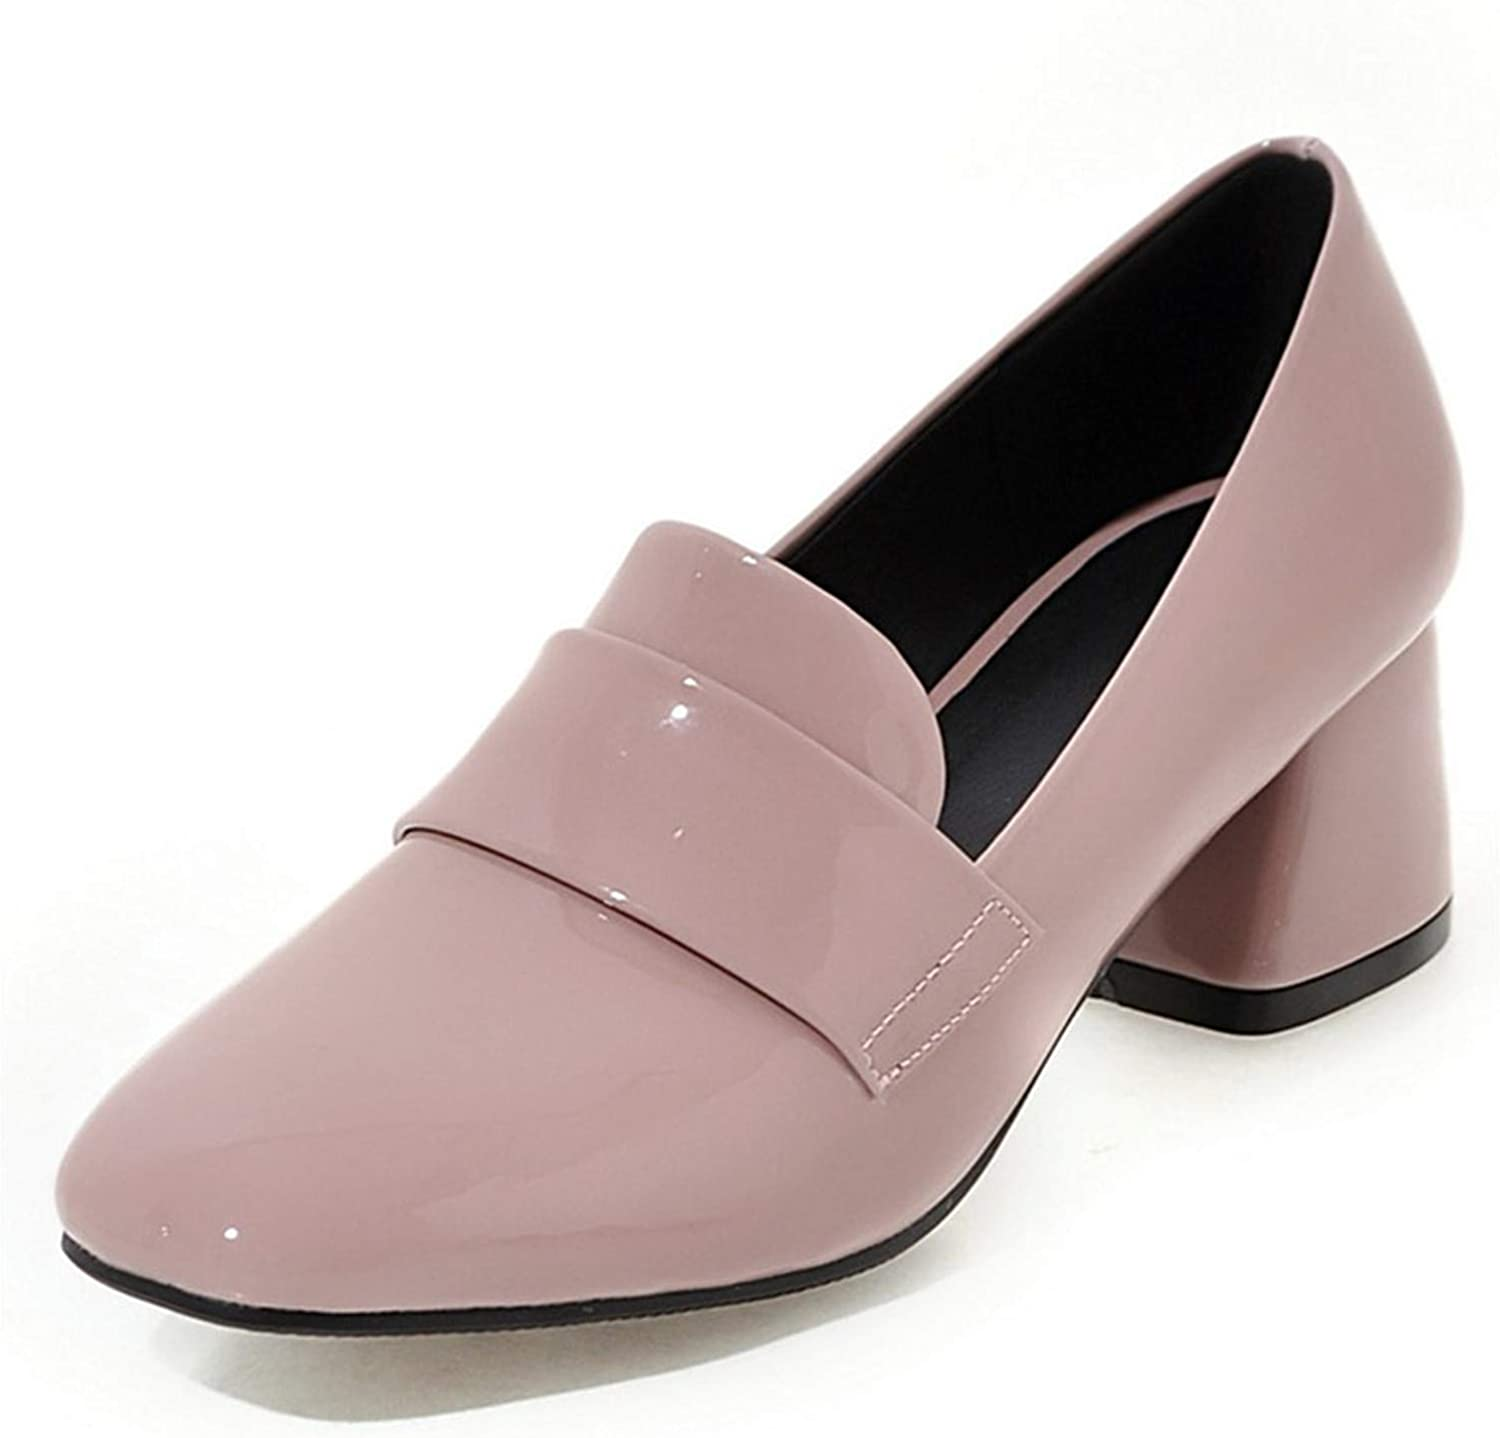 Kristing high Heels Women shoes Patent Leather Pumps Single shoes Work Office Lady Shallow Fashion